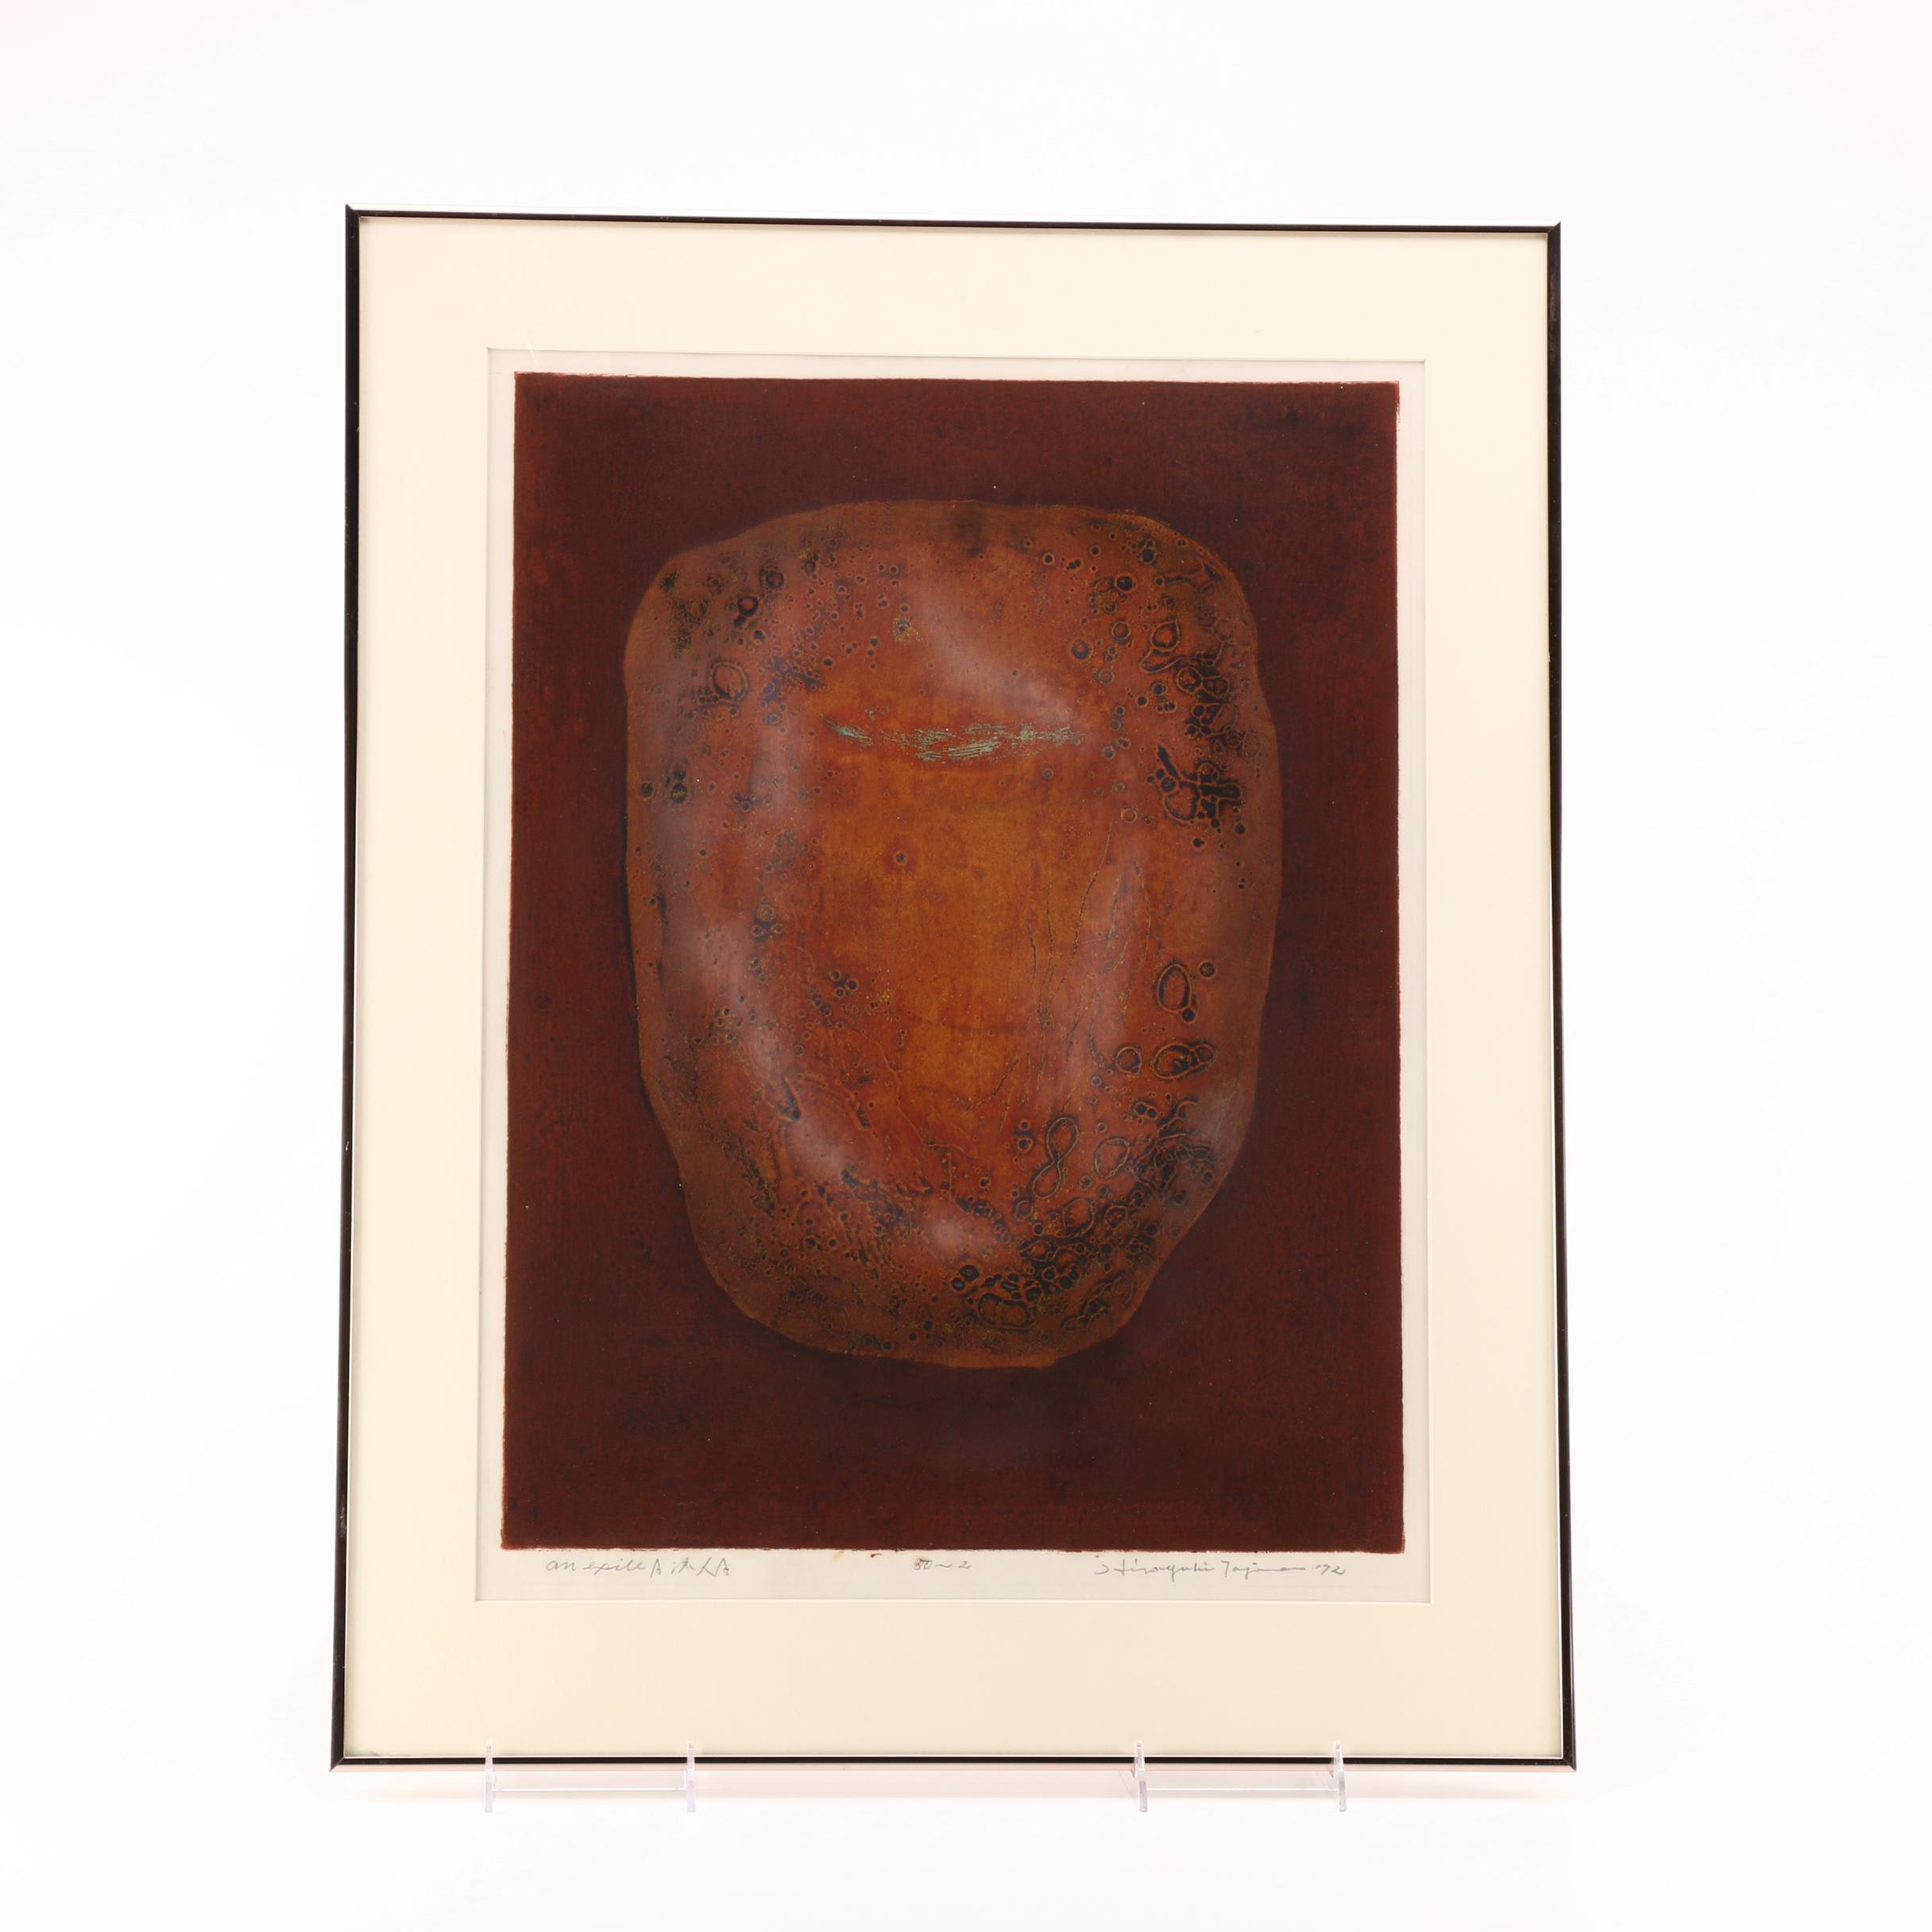 Aquatint Etching on Paper of an Artifact